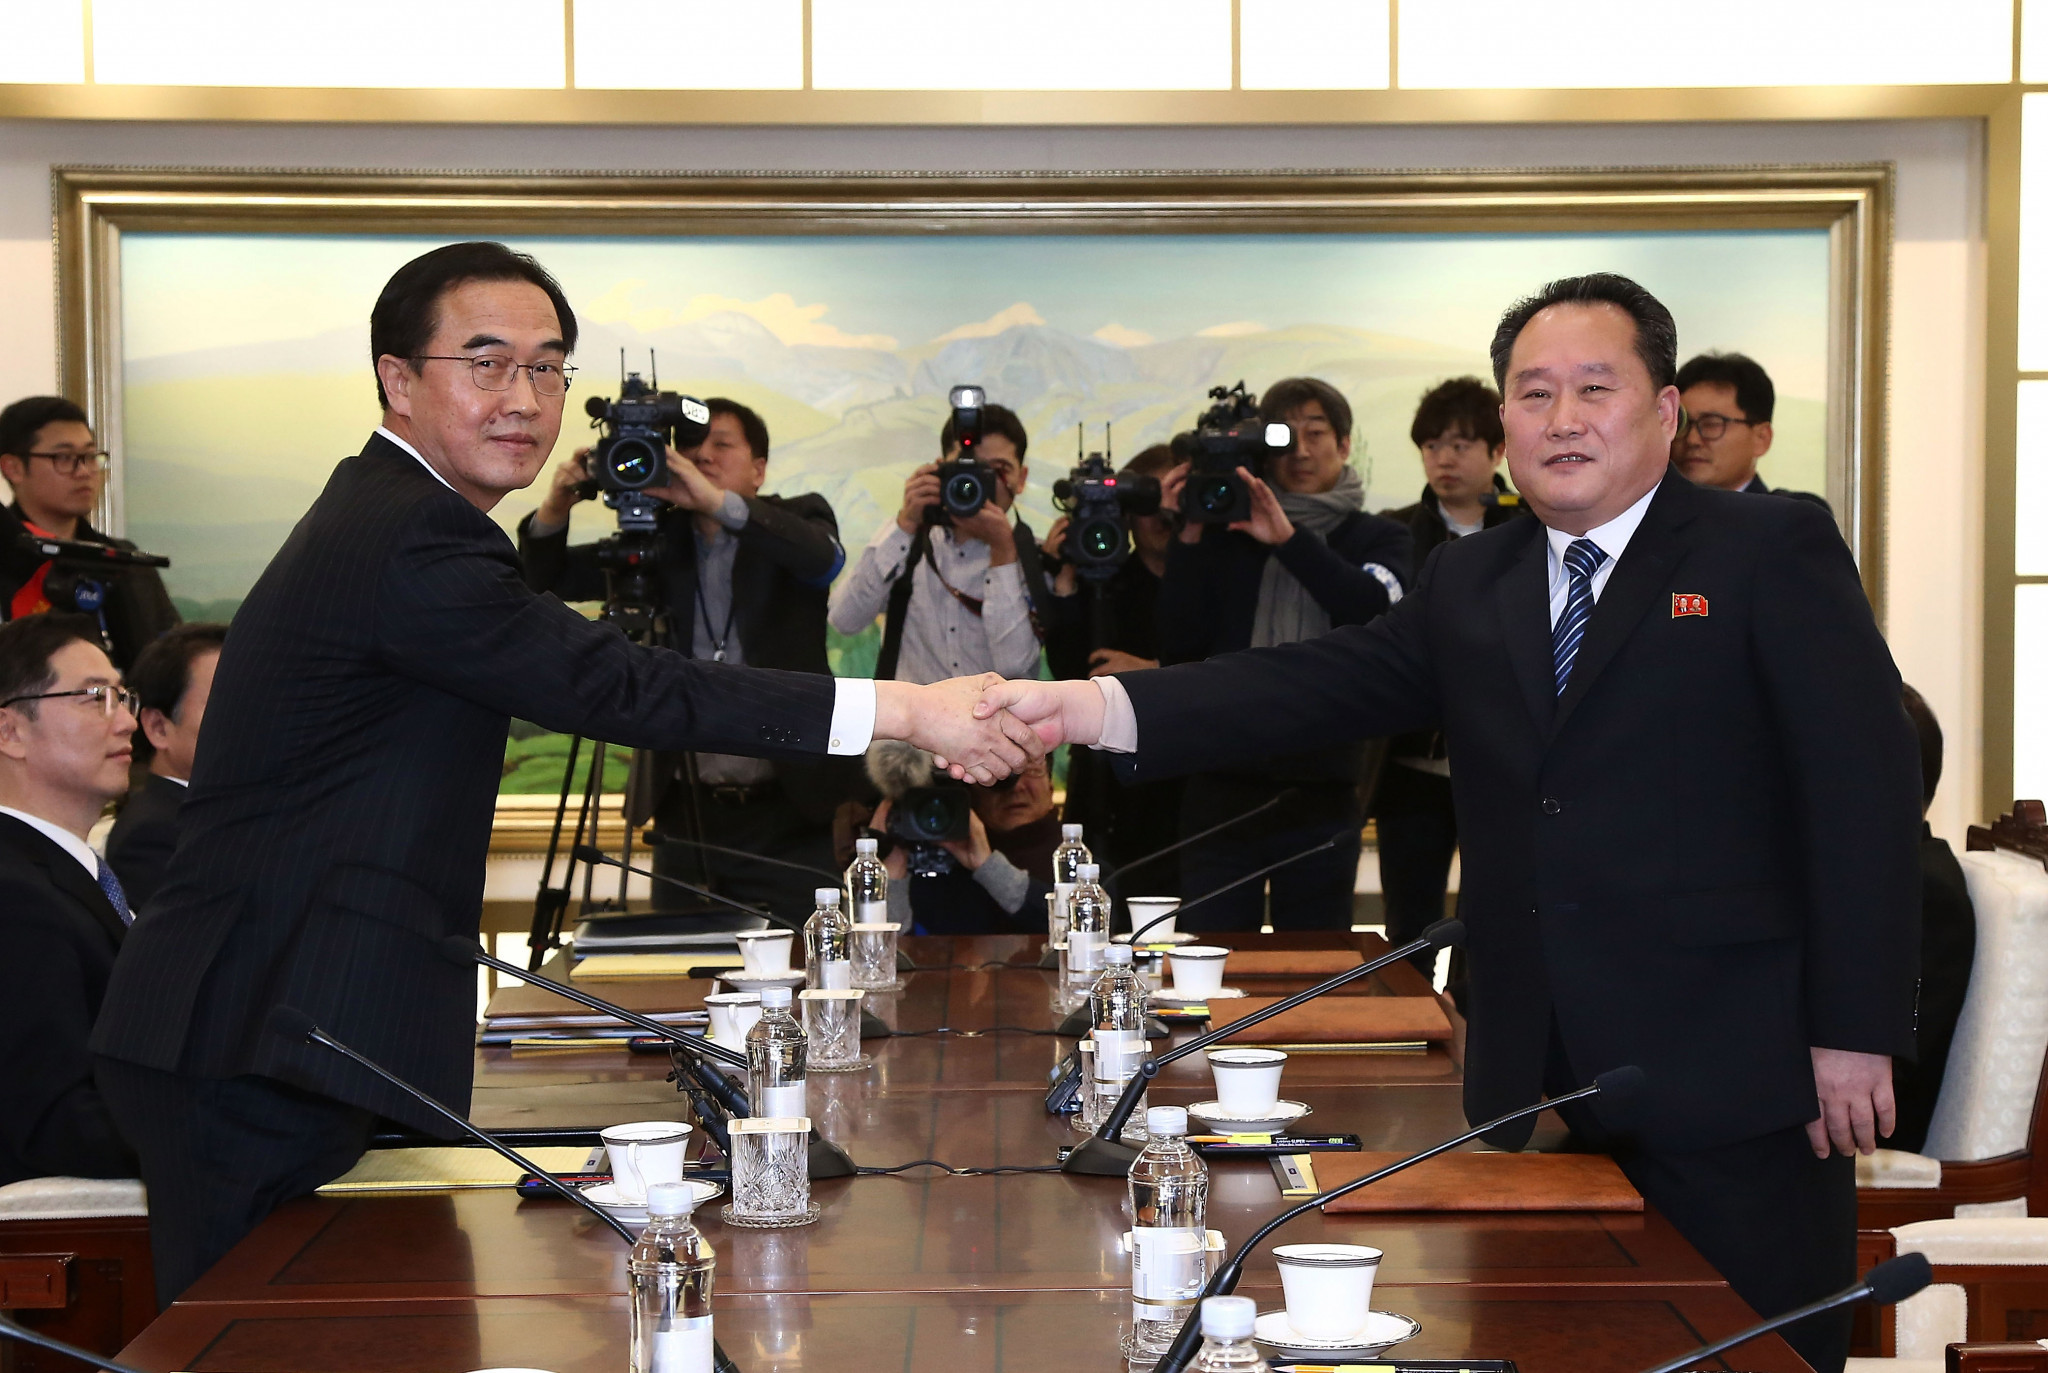 South Korea Unification Minister Cho Myung-Gyun, left, and North Korean chief delegate Ri Son-Gwon, right, pictured during the meeting today ©Getty Images